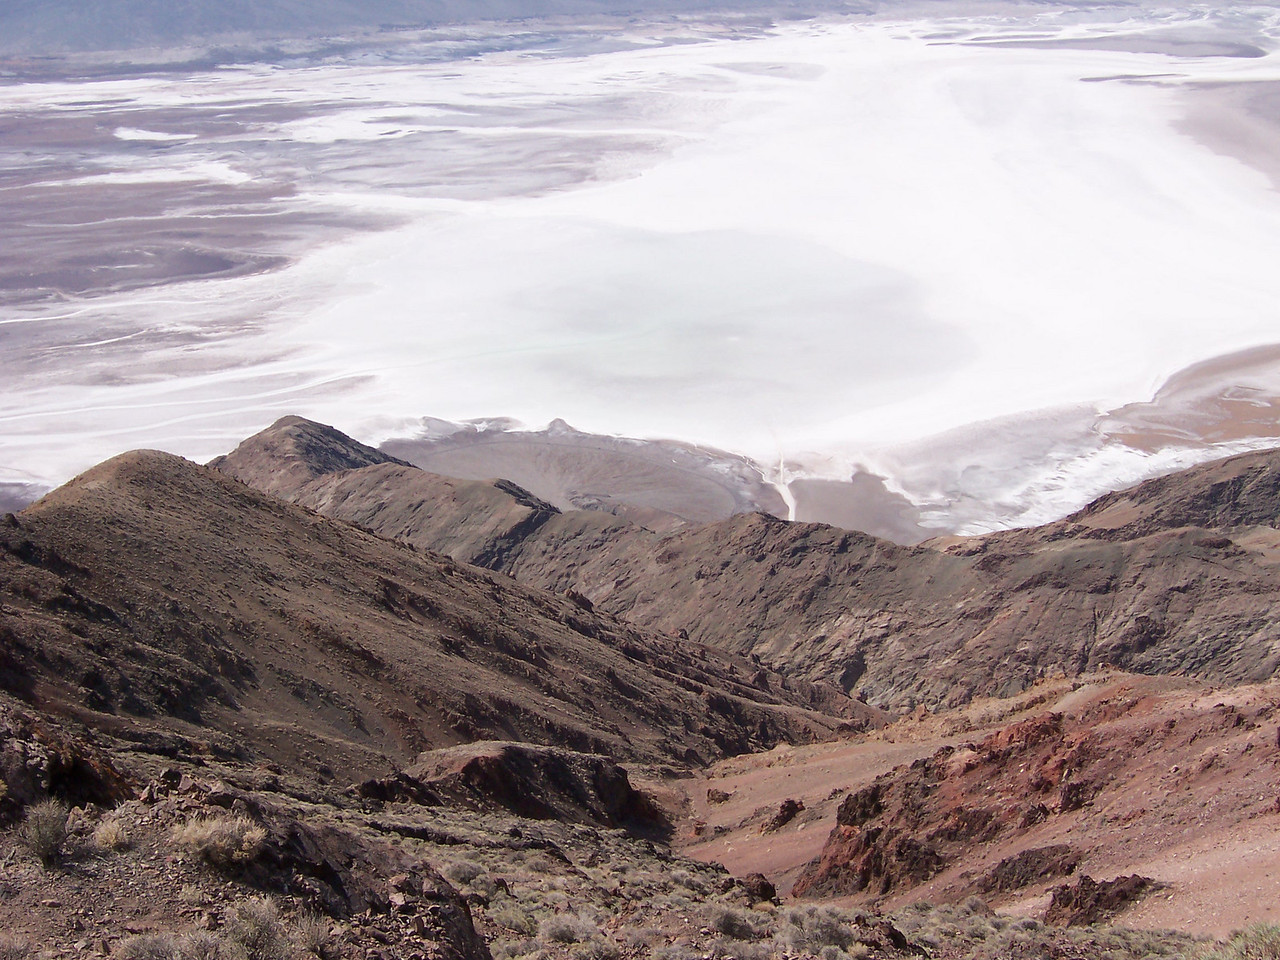 The Badwater Road over 5000' below and one mile away.